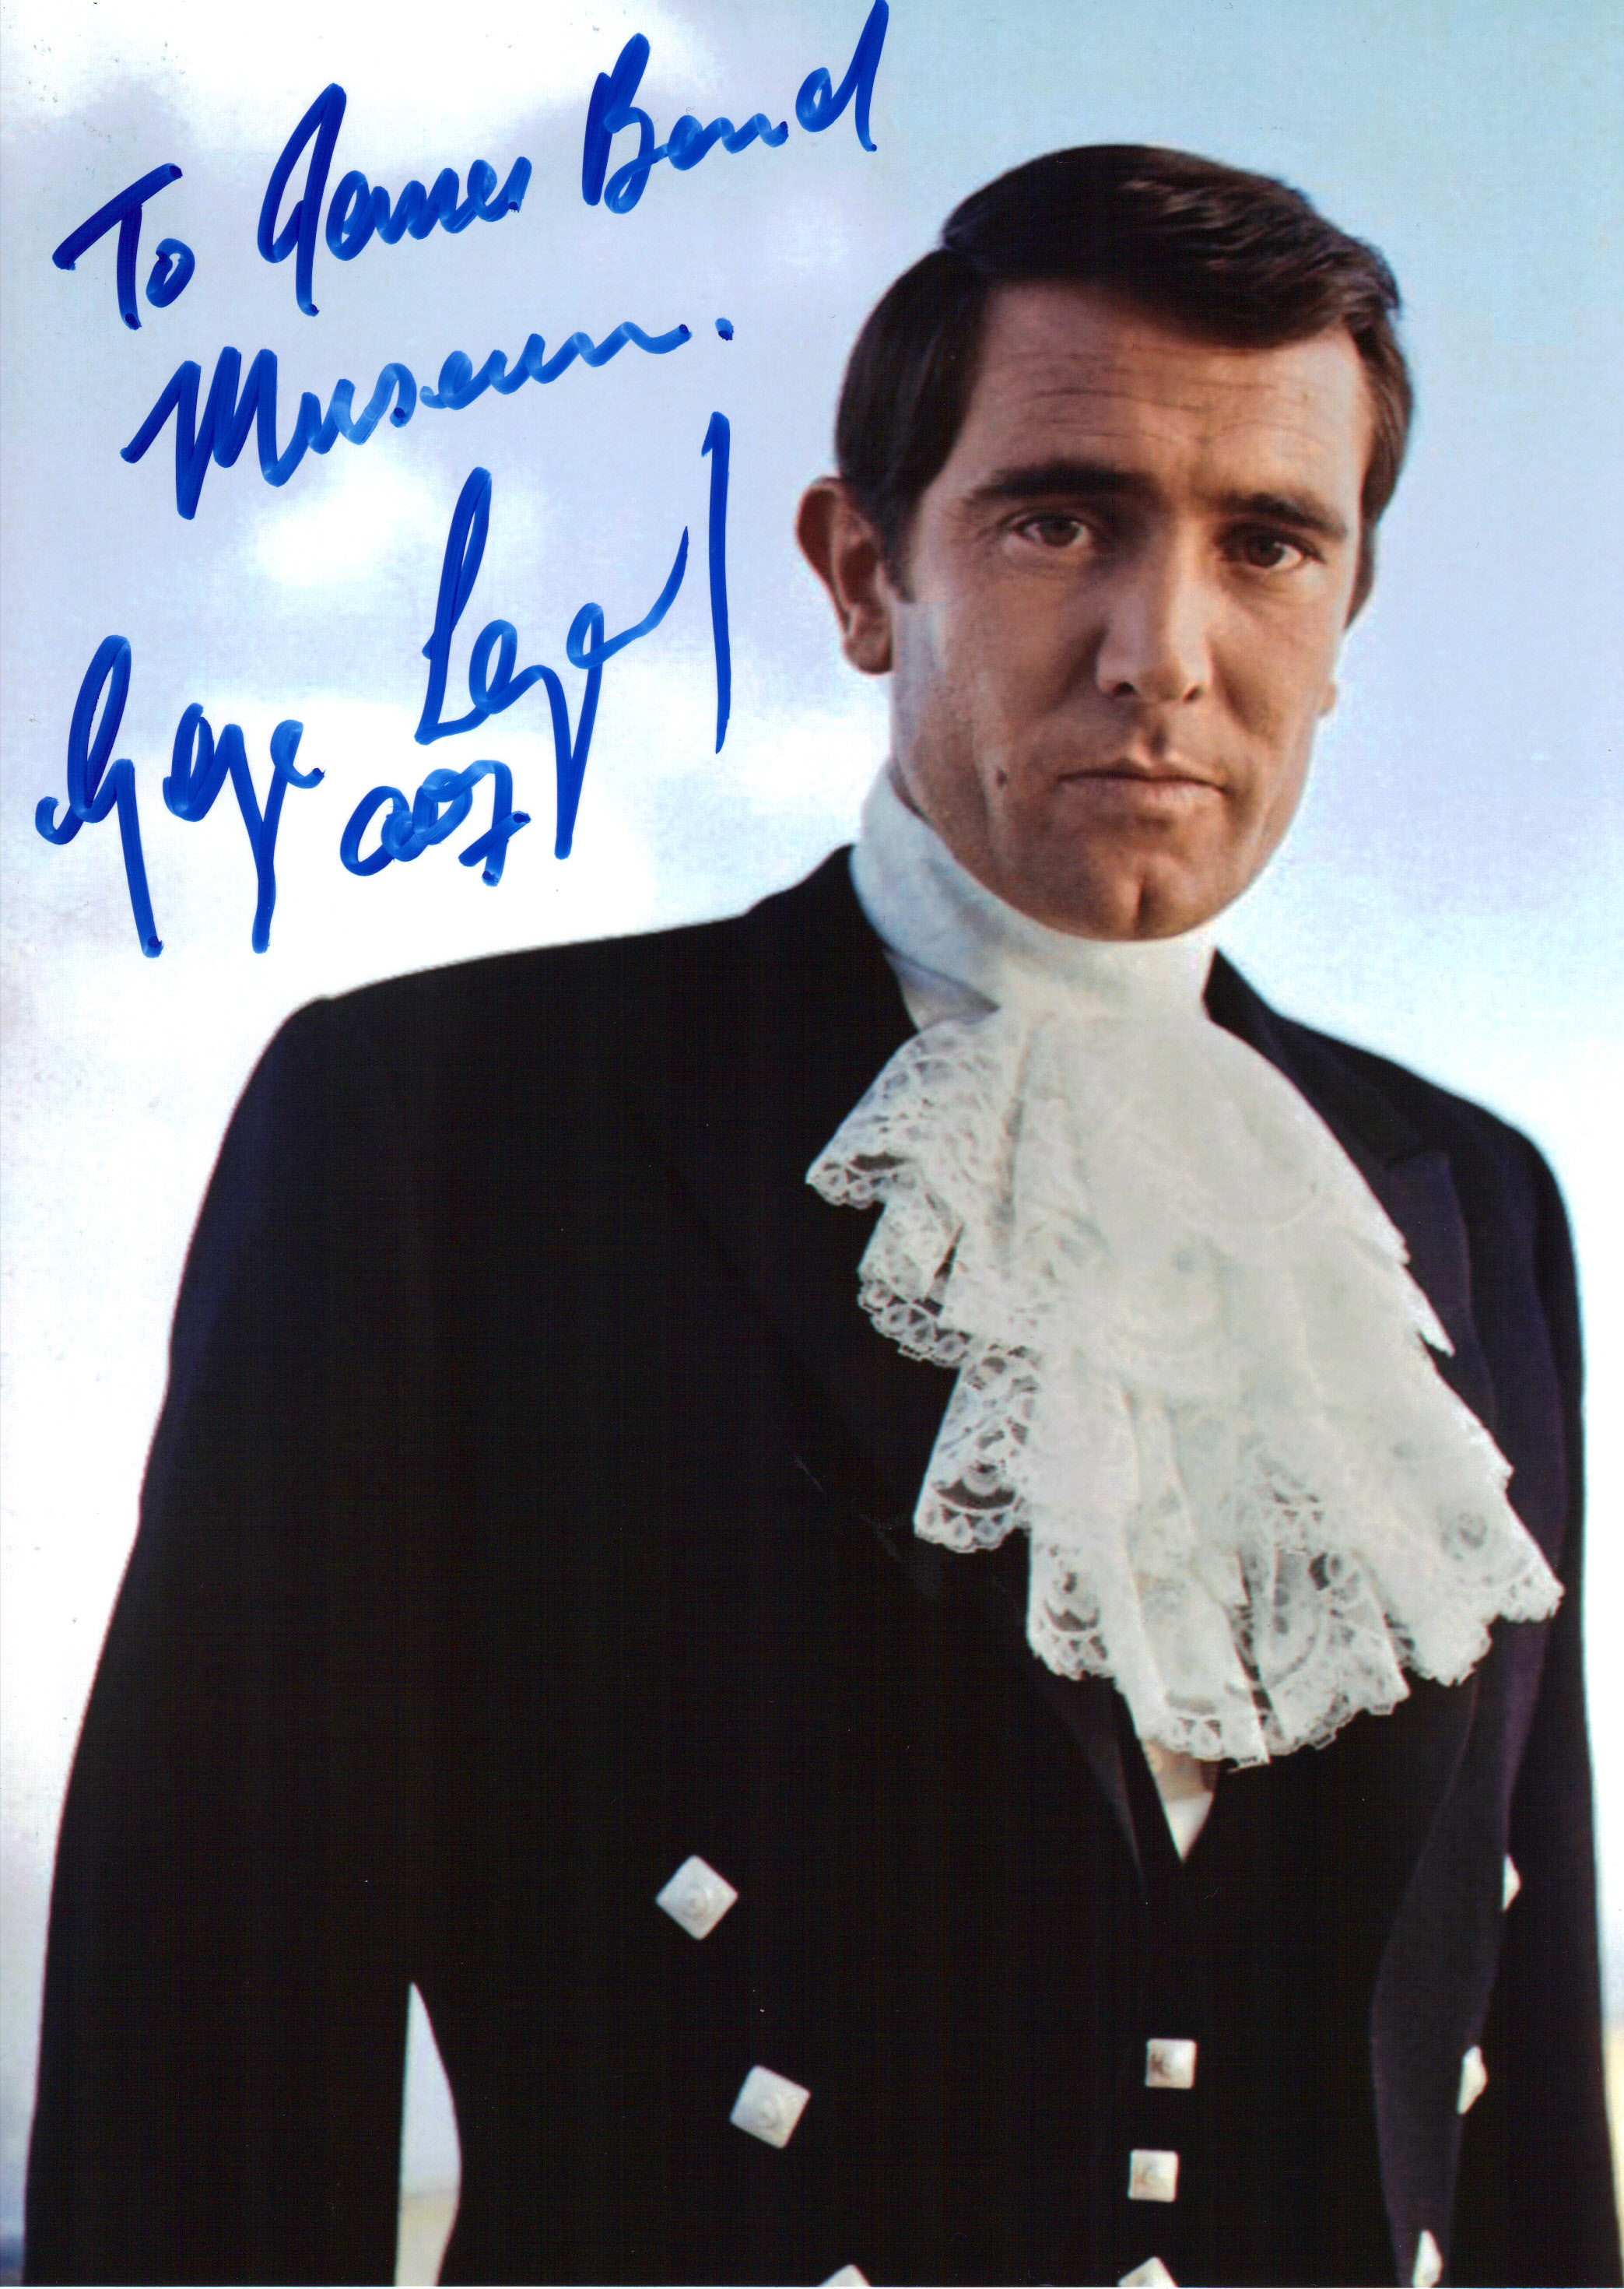 george lazenby net worthgeorge lazenby bond, george lazenby james bond, george lazenby legit, george lazenby net worth, george lazenby, george lazenby imdb, george lazenby 007, george lazenby wiki, george lazenby height, george lazenby 2014, george lazenby twitter, george lazenby best bond, george lazenby bruce lee, george lazenby gettysburg, george lazenby diana rigg, george lazenby interview, george lazenby pam shriver, george lazenby advert, george lazenby dubbed